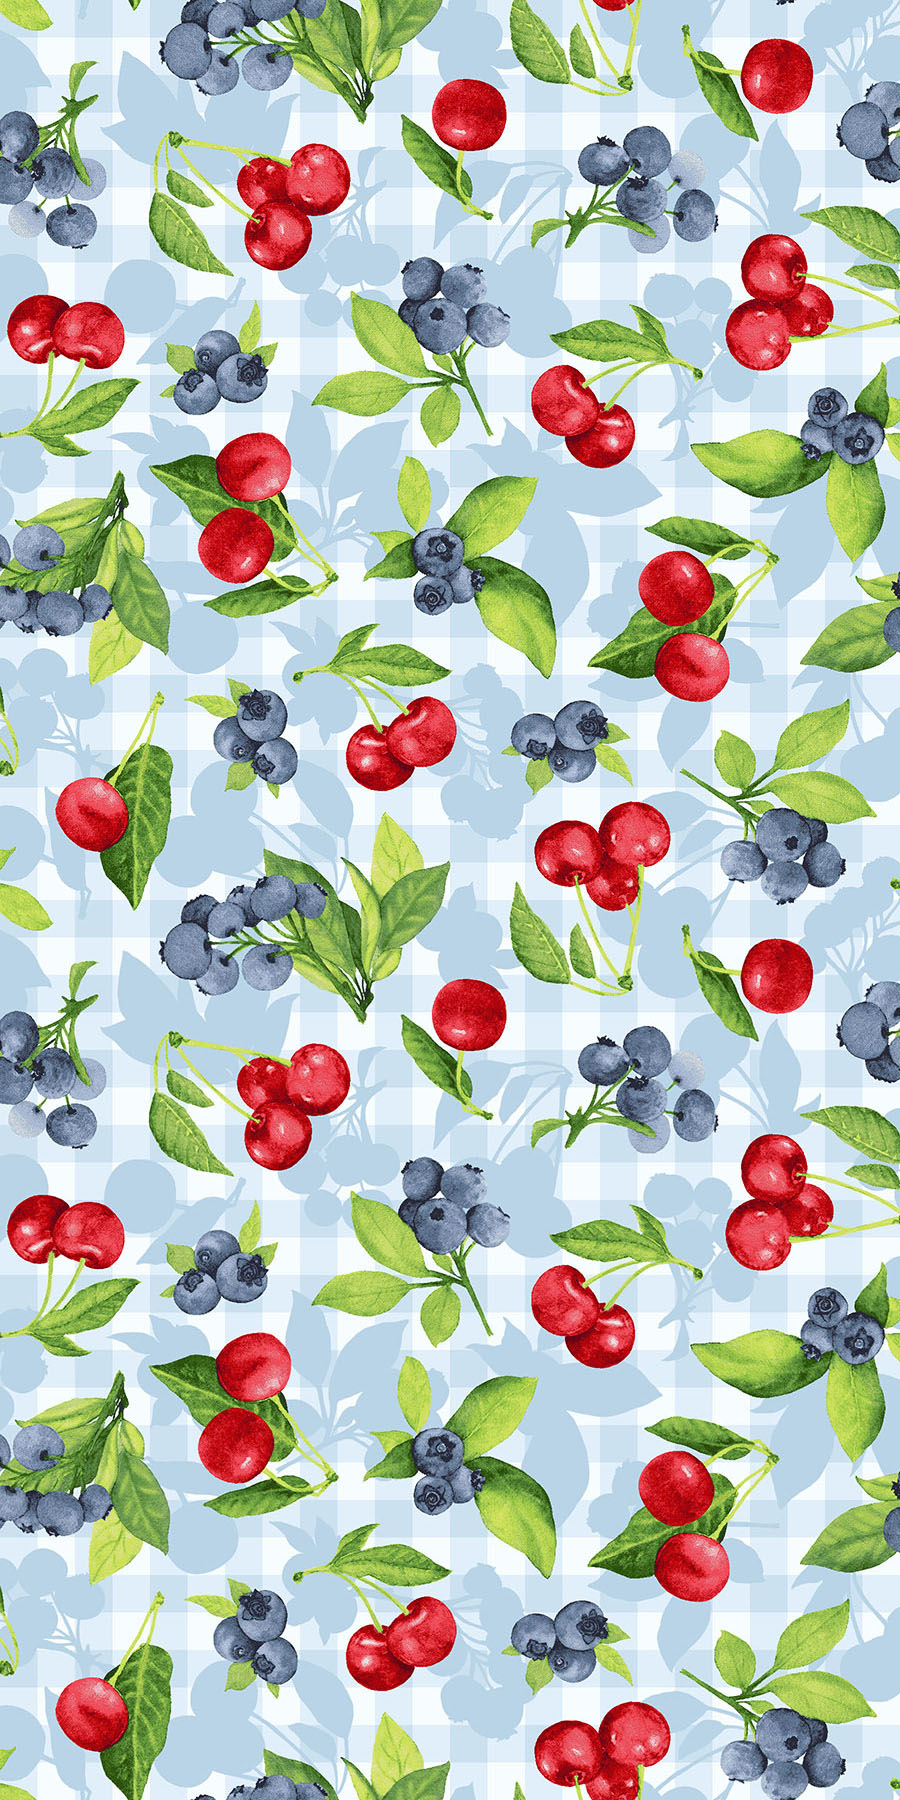 3558-001  CHERRY BERRY-BLUE SKY